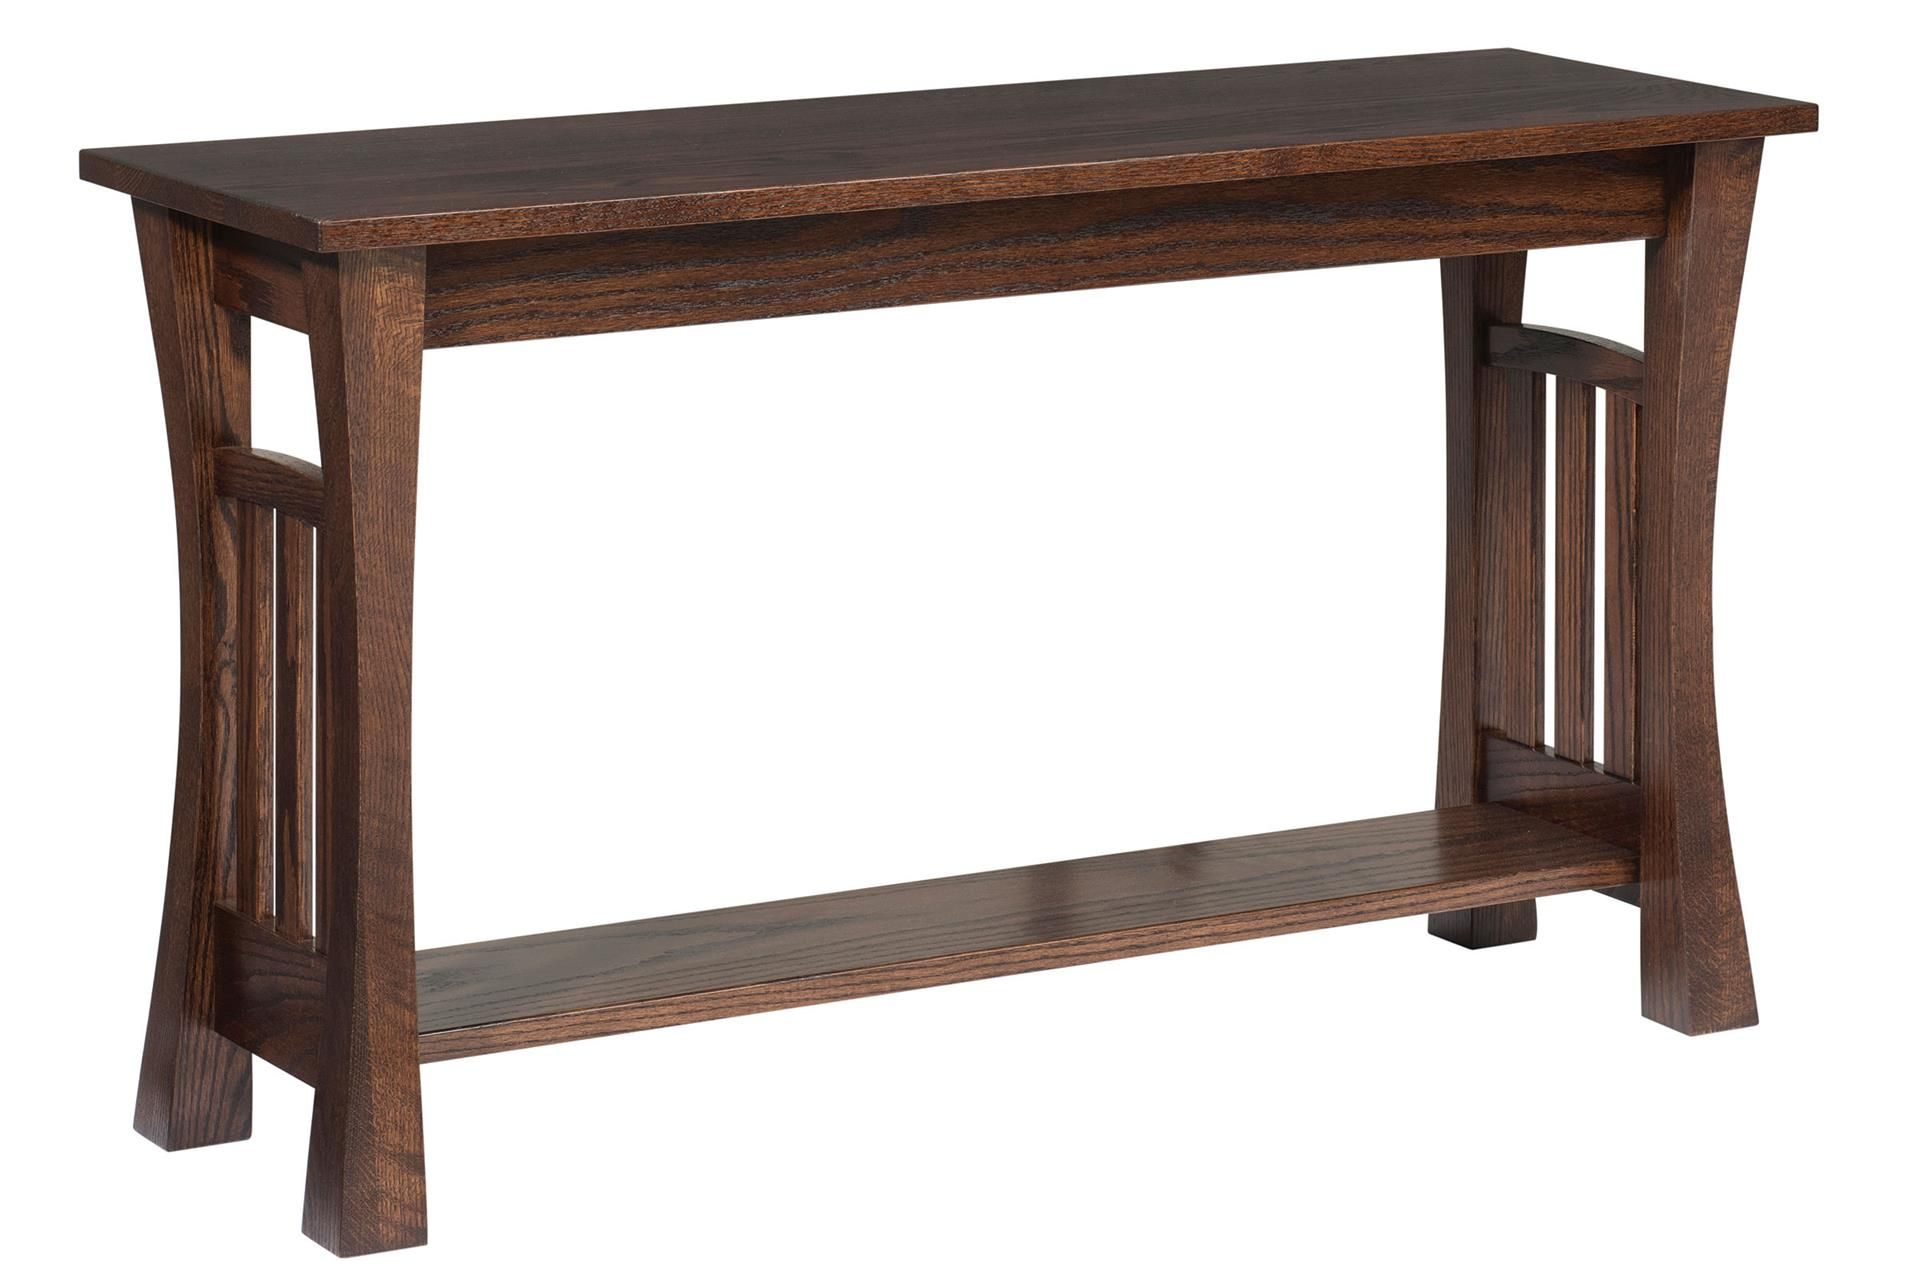 Amish Gateway Sofa Table The Amish Gateway Sofa Table Brings A Solid Wood Beauty To The Living Room Or Hallway Sha Shaker Style Furniture Sofa Table Furniture